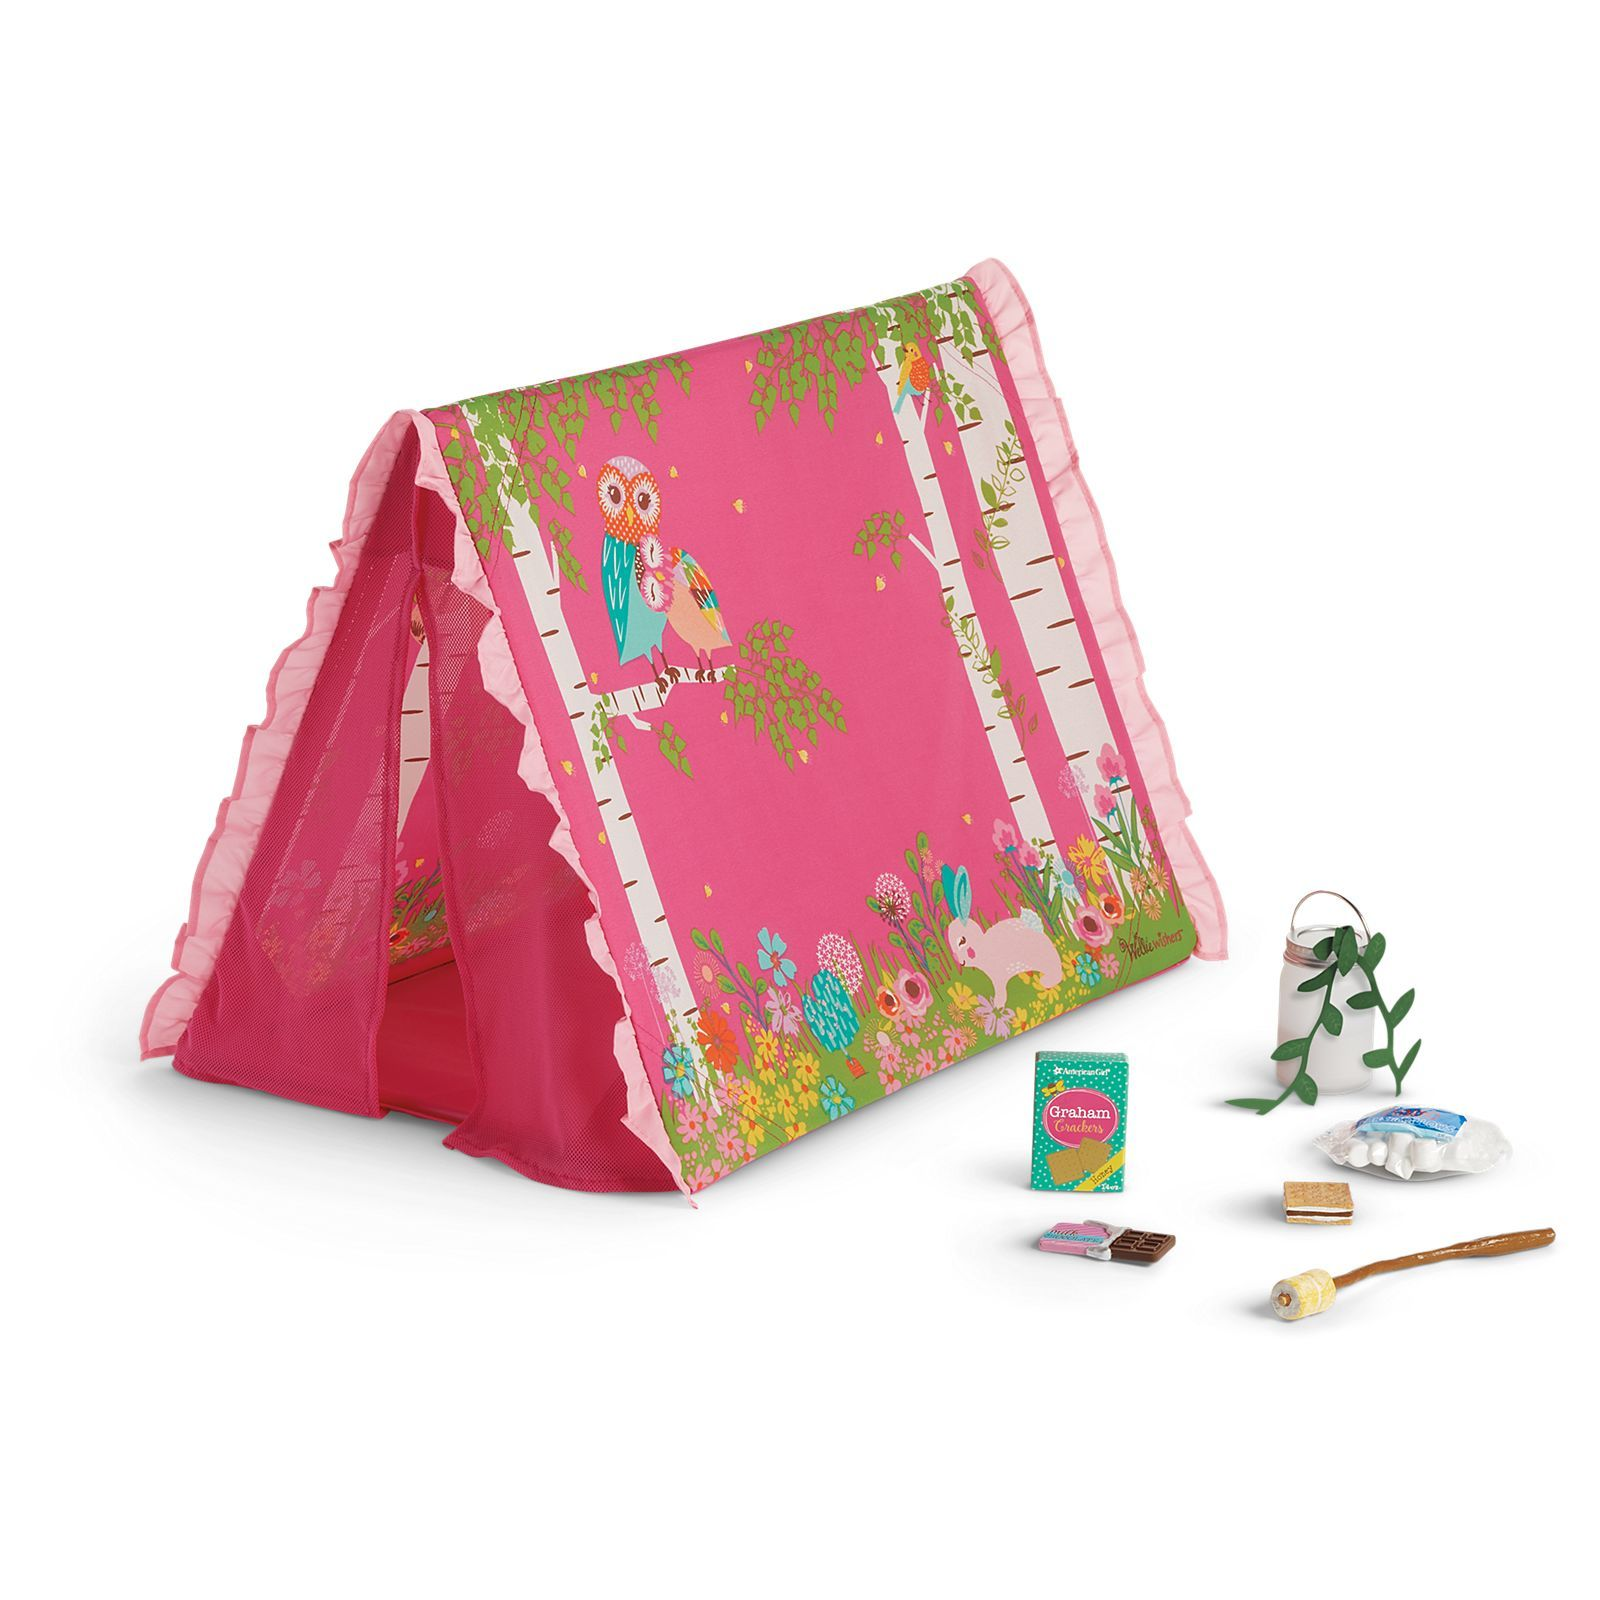 Sweet dreams garden tent for welliewishers dolls ryleigh lynn